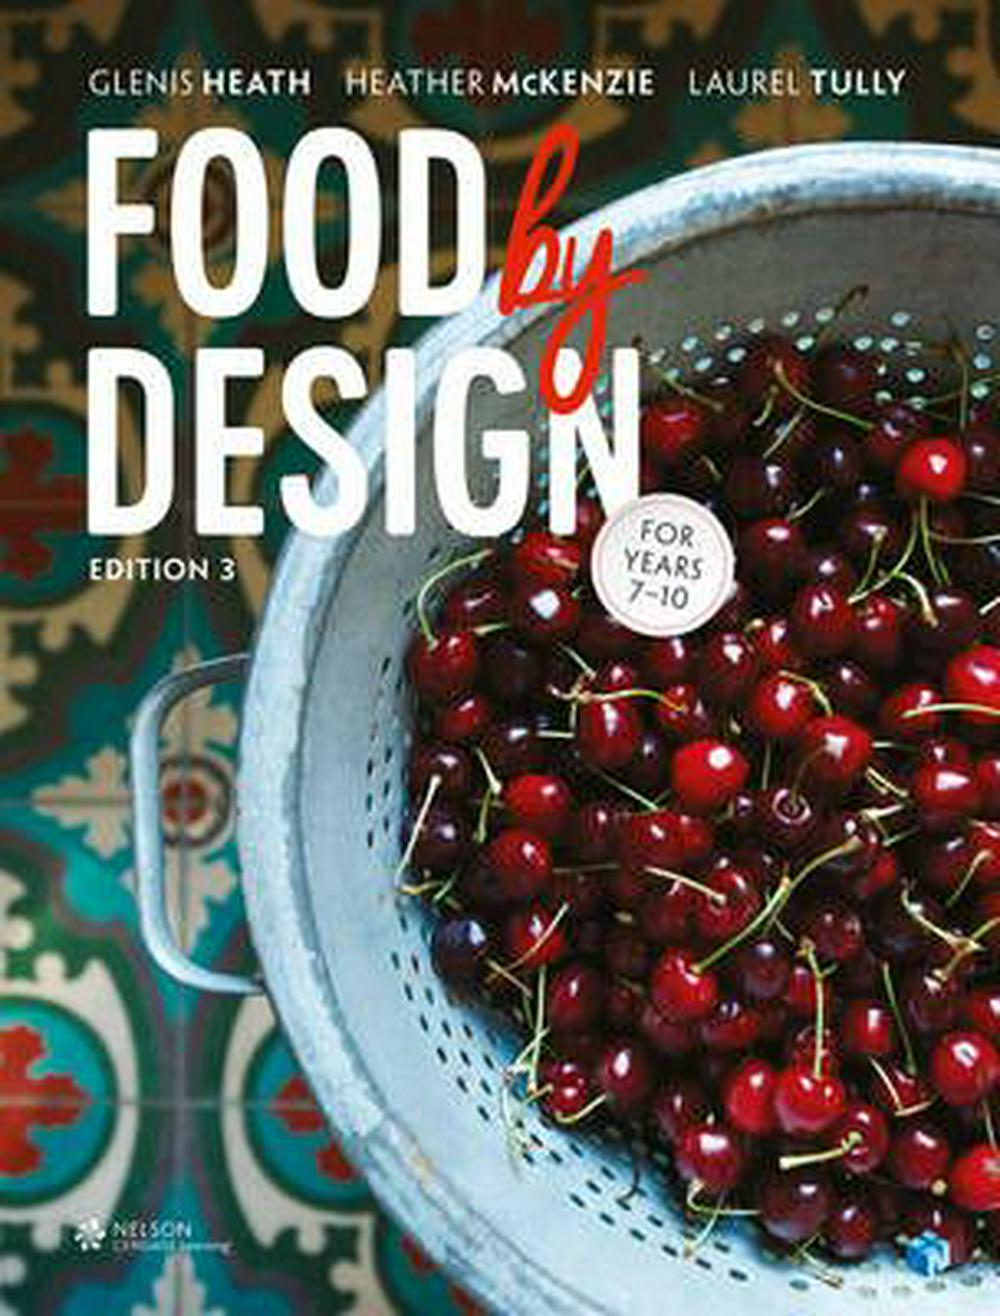 Food By Design (Student Book with 4 Access Code) by Glenis Heath,Heather McKenzie,Laurel Tully, ISBN: 9780170358507